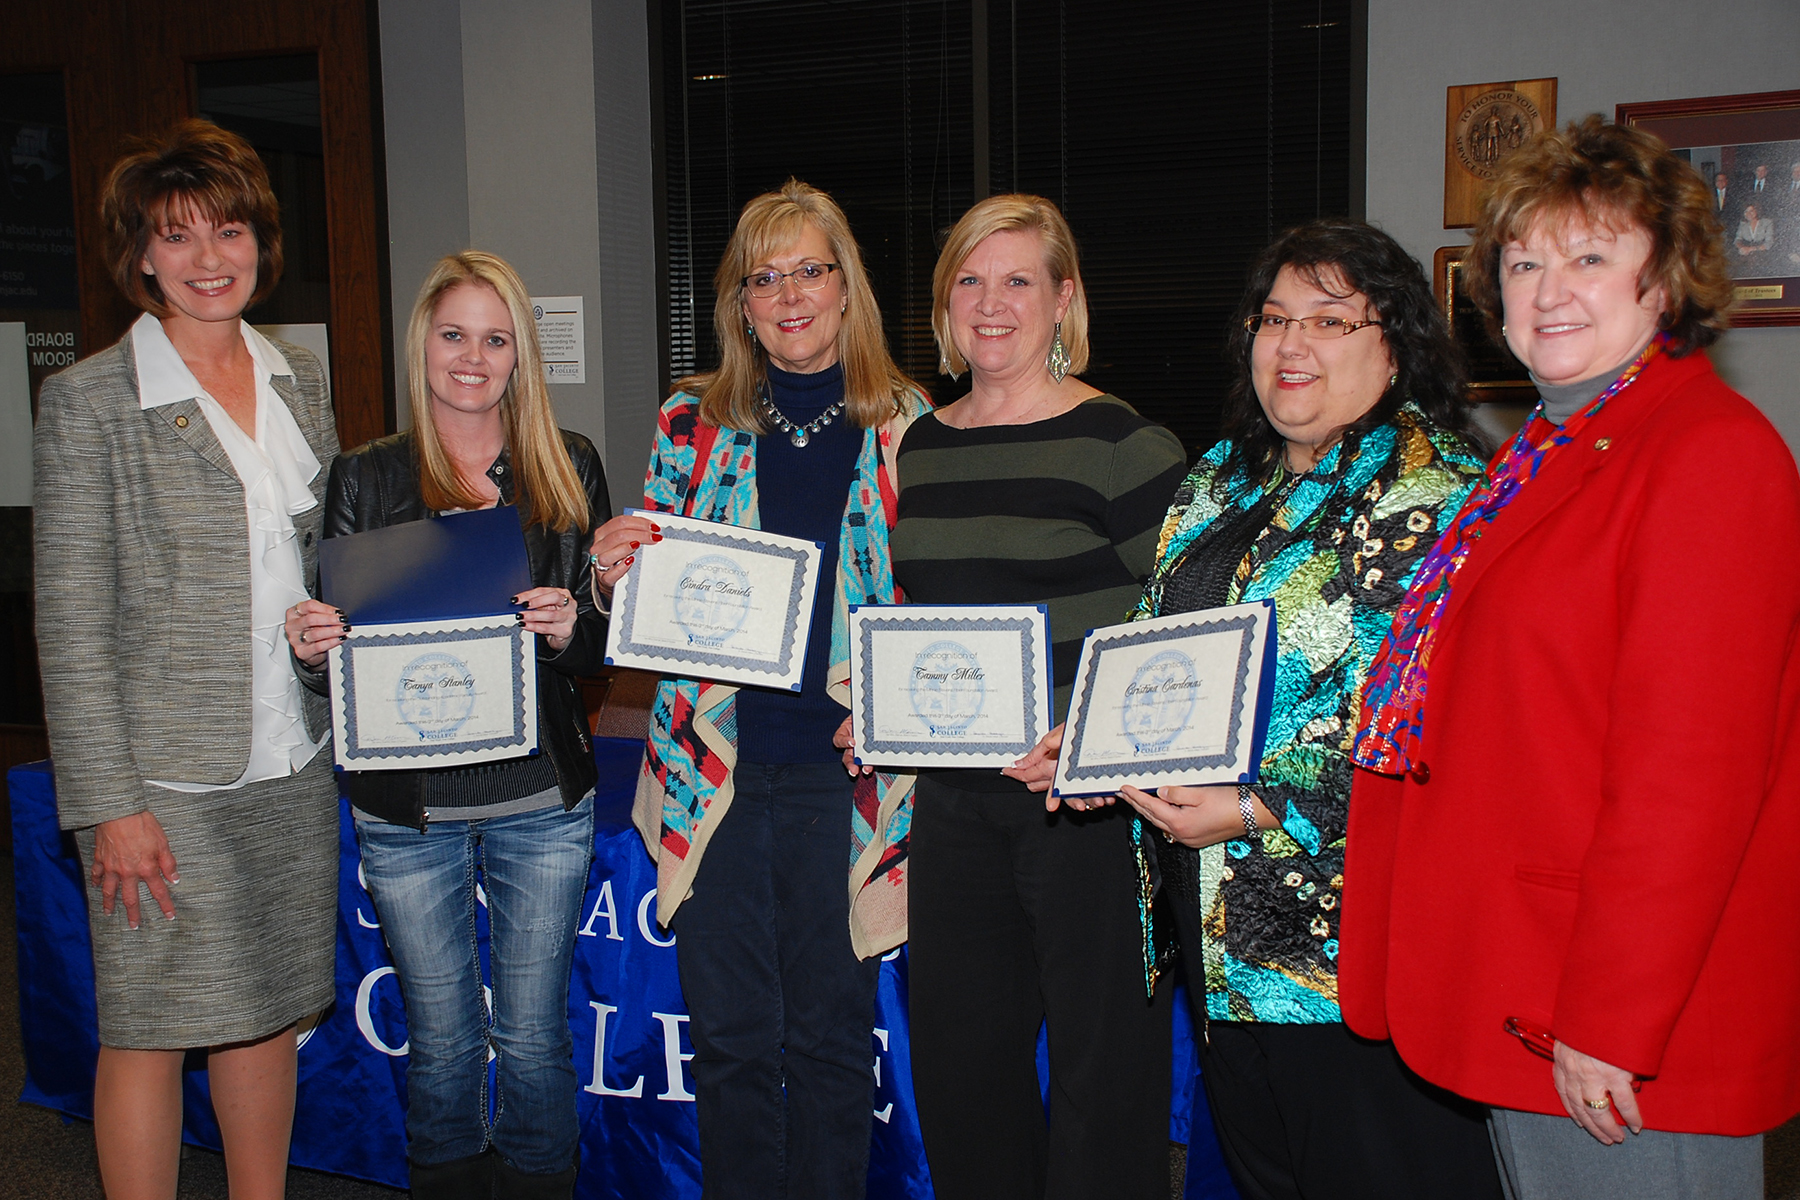 Dr. Brenda Hellyer (left) recognized Tanya Stanley as the Central Campus outstanding faculty member, along with Cindra Daniels, Tammy Miller, and Cristina Cardenas as the College's Minnie Stevens Piper Professor nominees. Pictured with them is Deputy Chancellor and College President, Dr. Laurel Williamson.